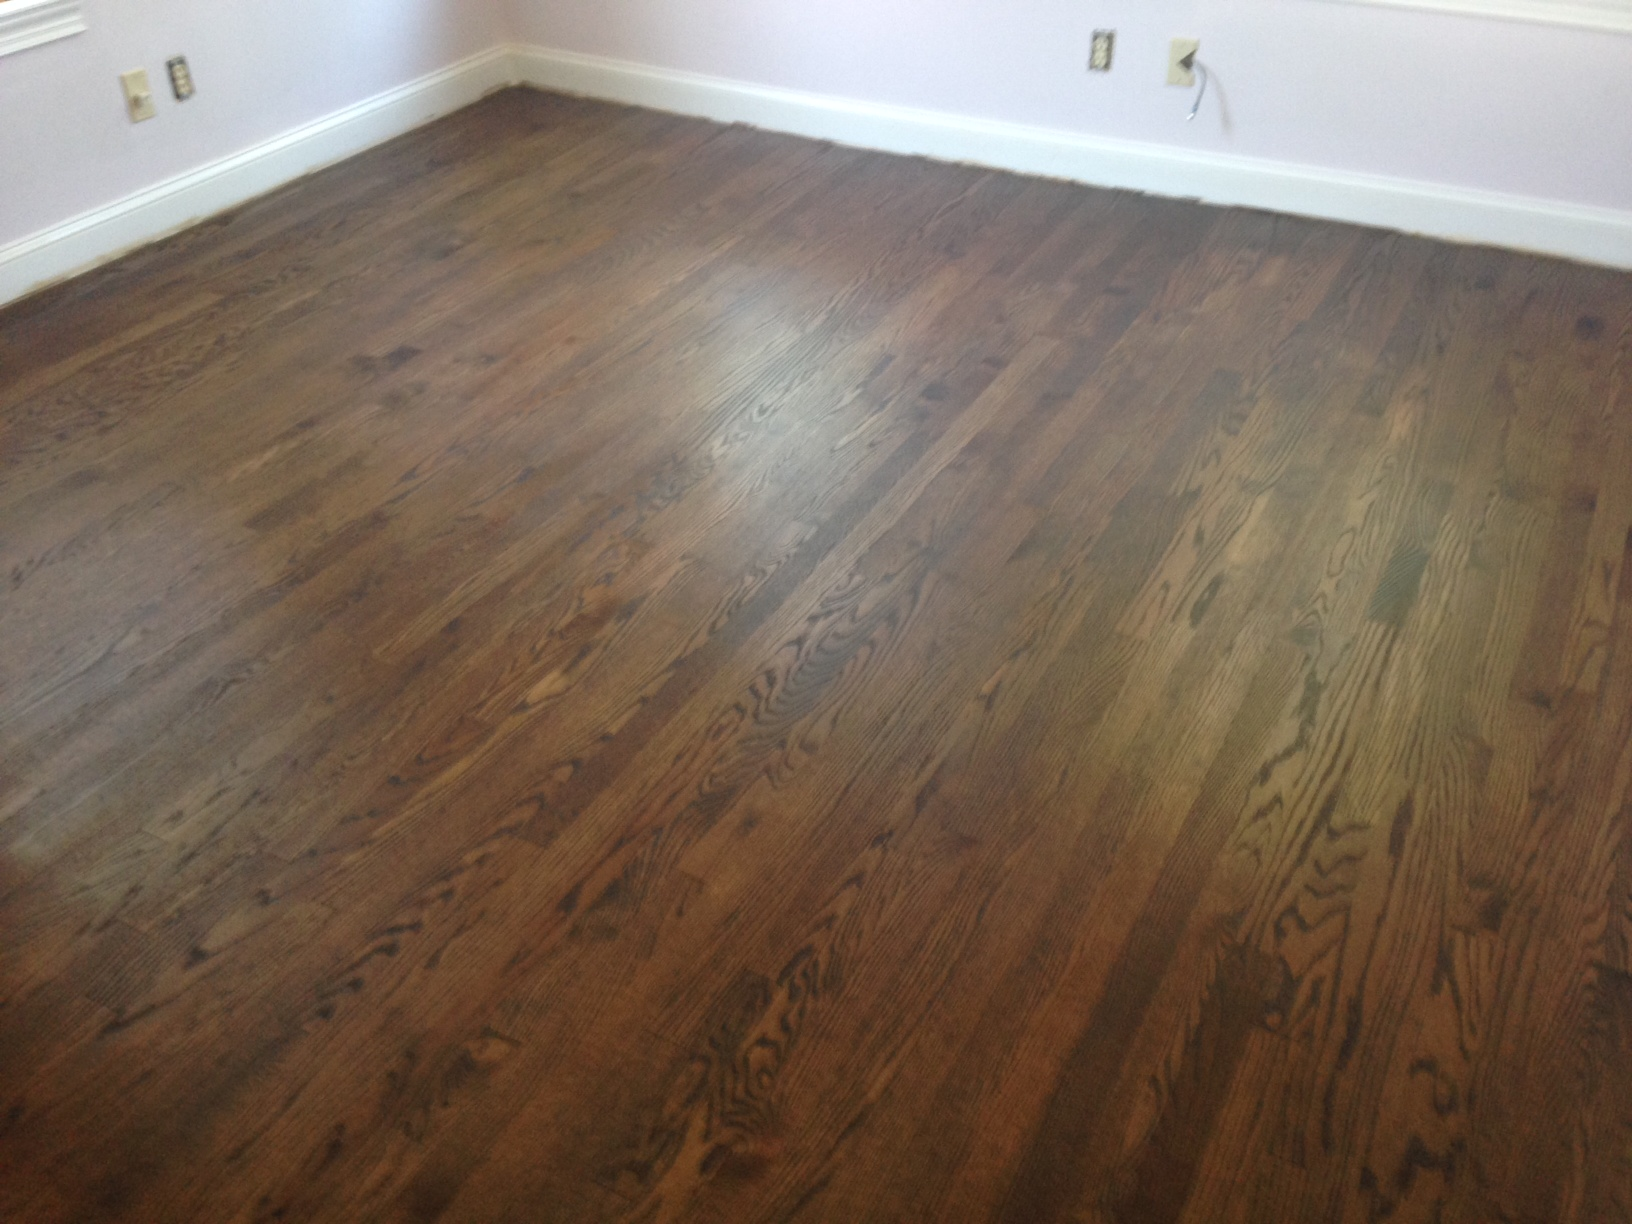 New Hardwood Floors Wood Floor Refinishing Epping Forest